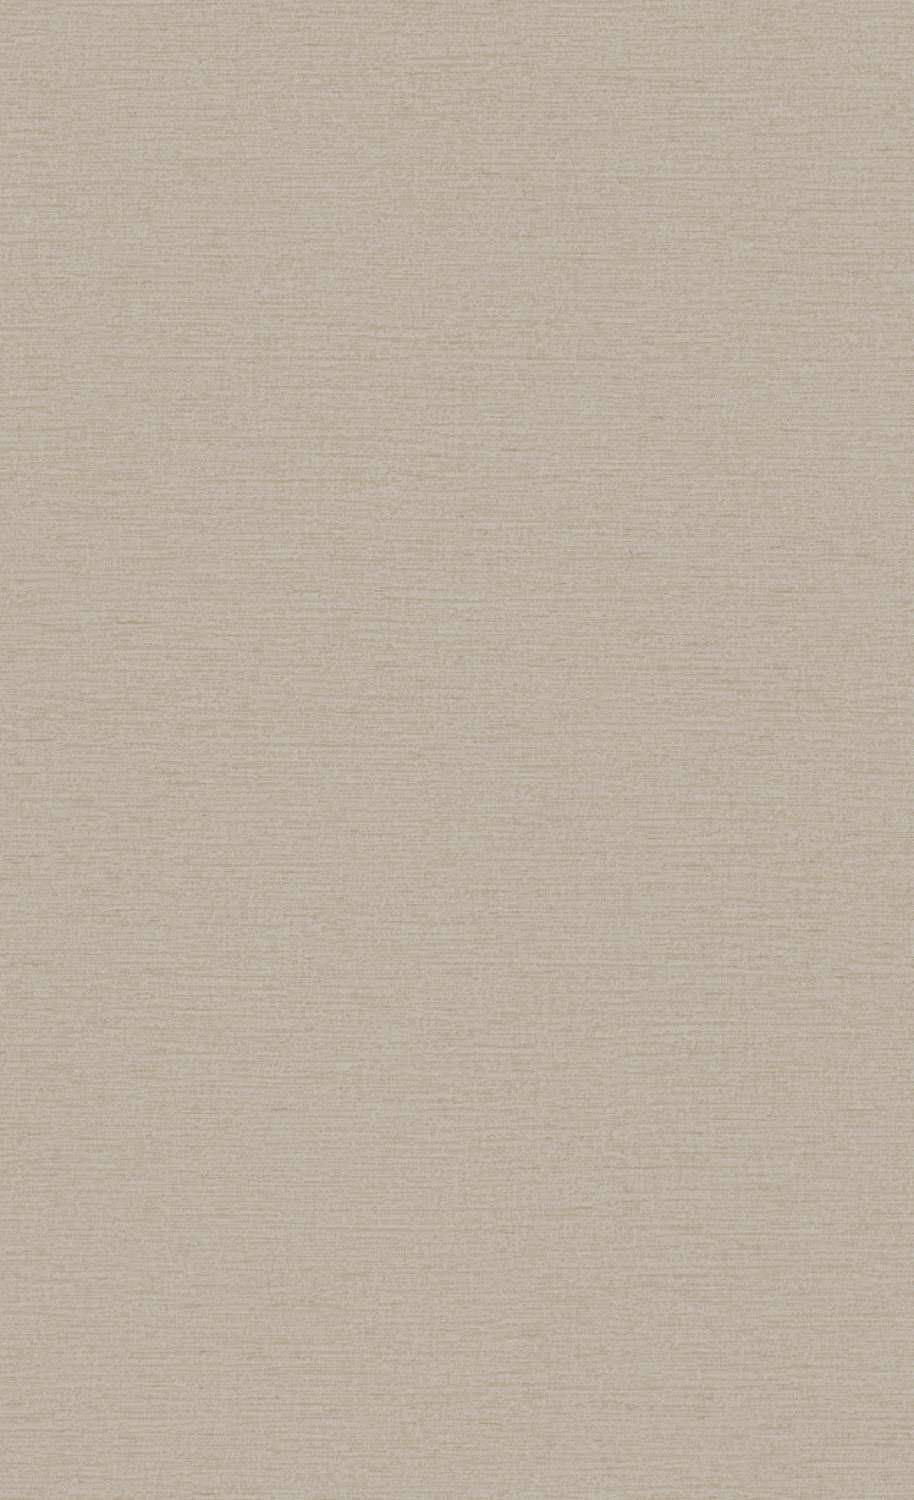 Plain Textured Gray Wallpaper C7133 | Commercial and Hospitality Wallpaper